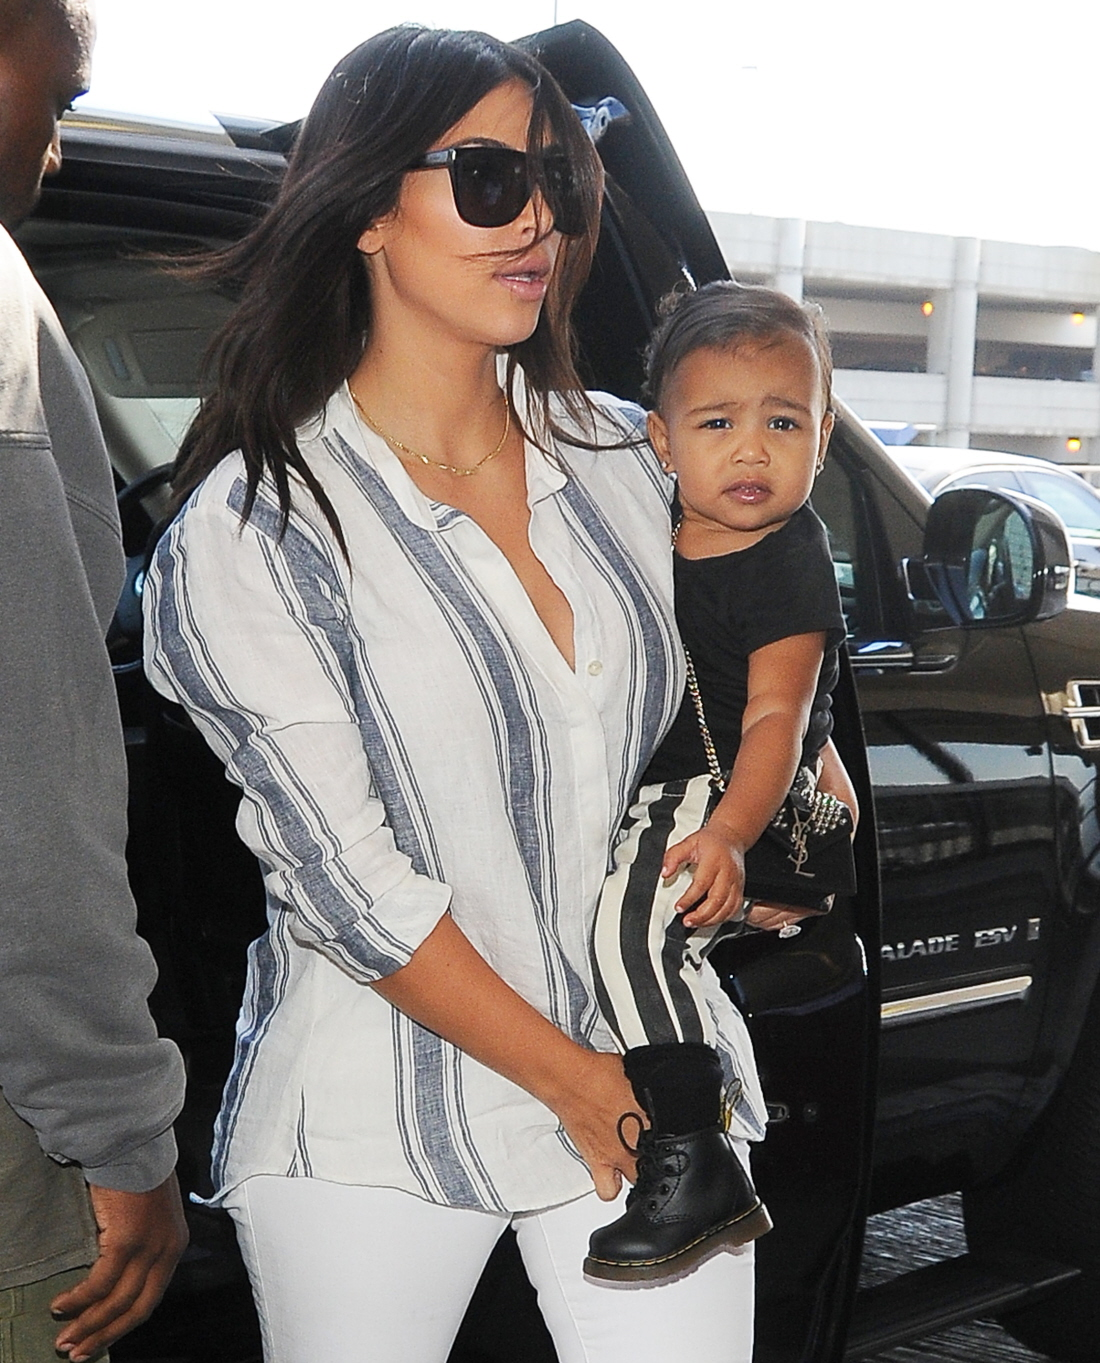 Cele|bitchy | North West\u0026#39;s street style involves YSL bags, baby ...